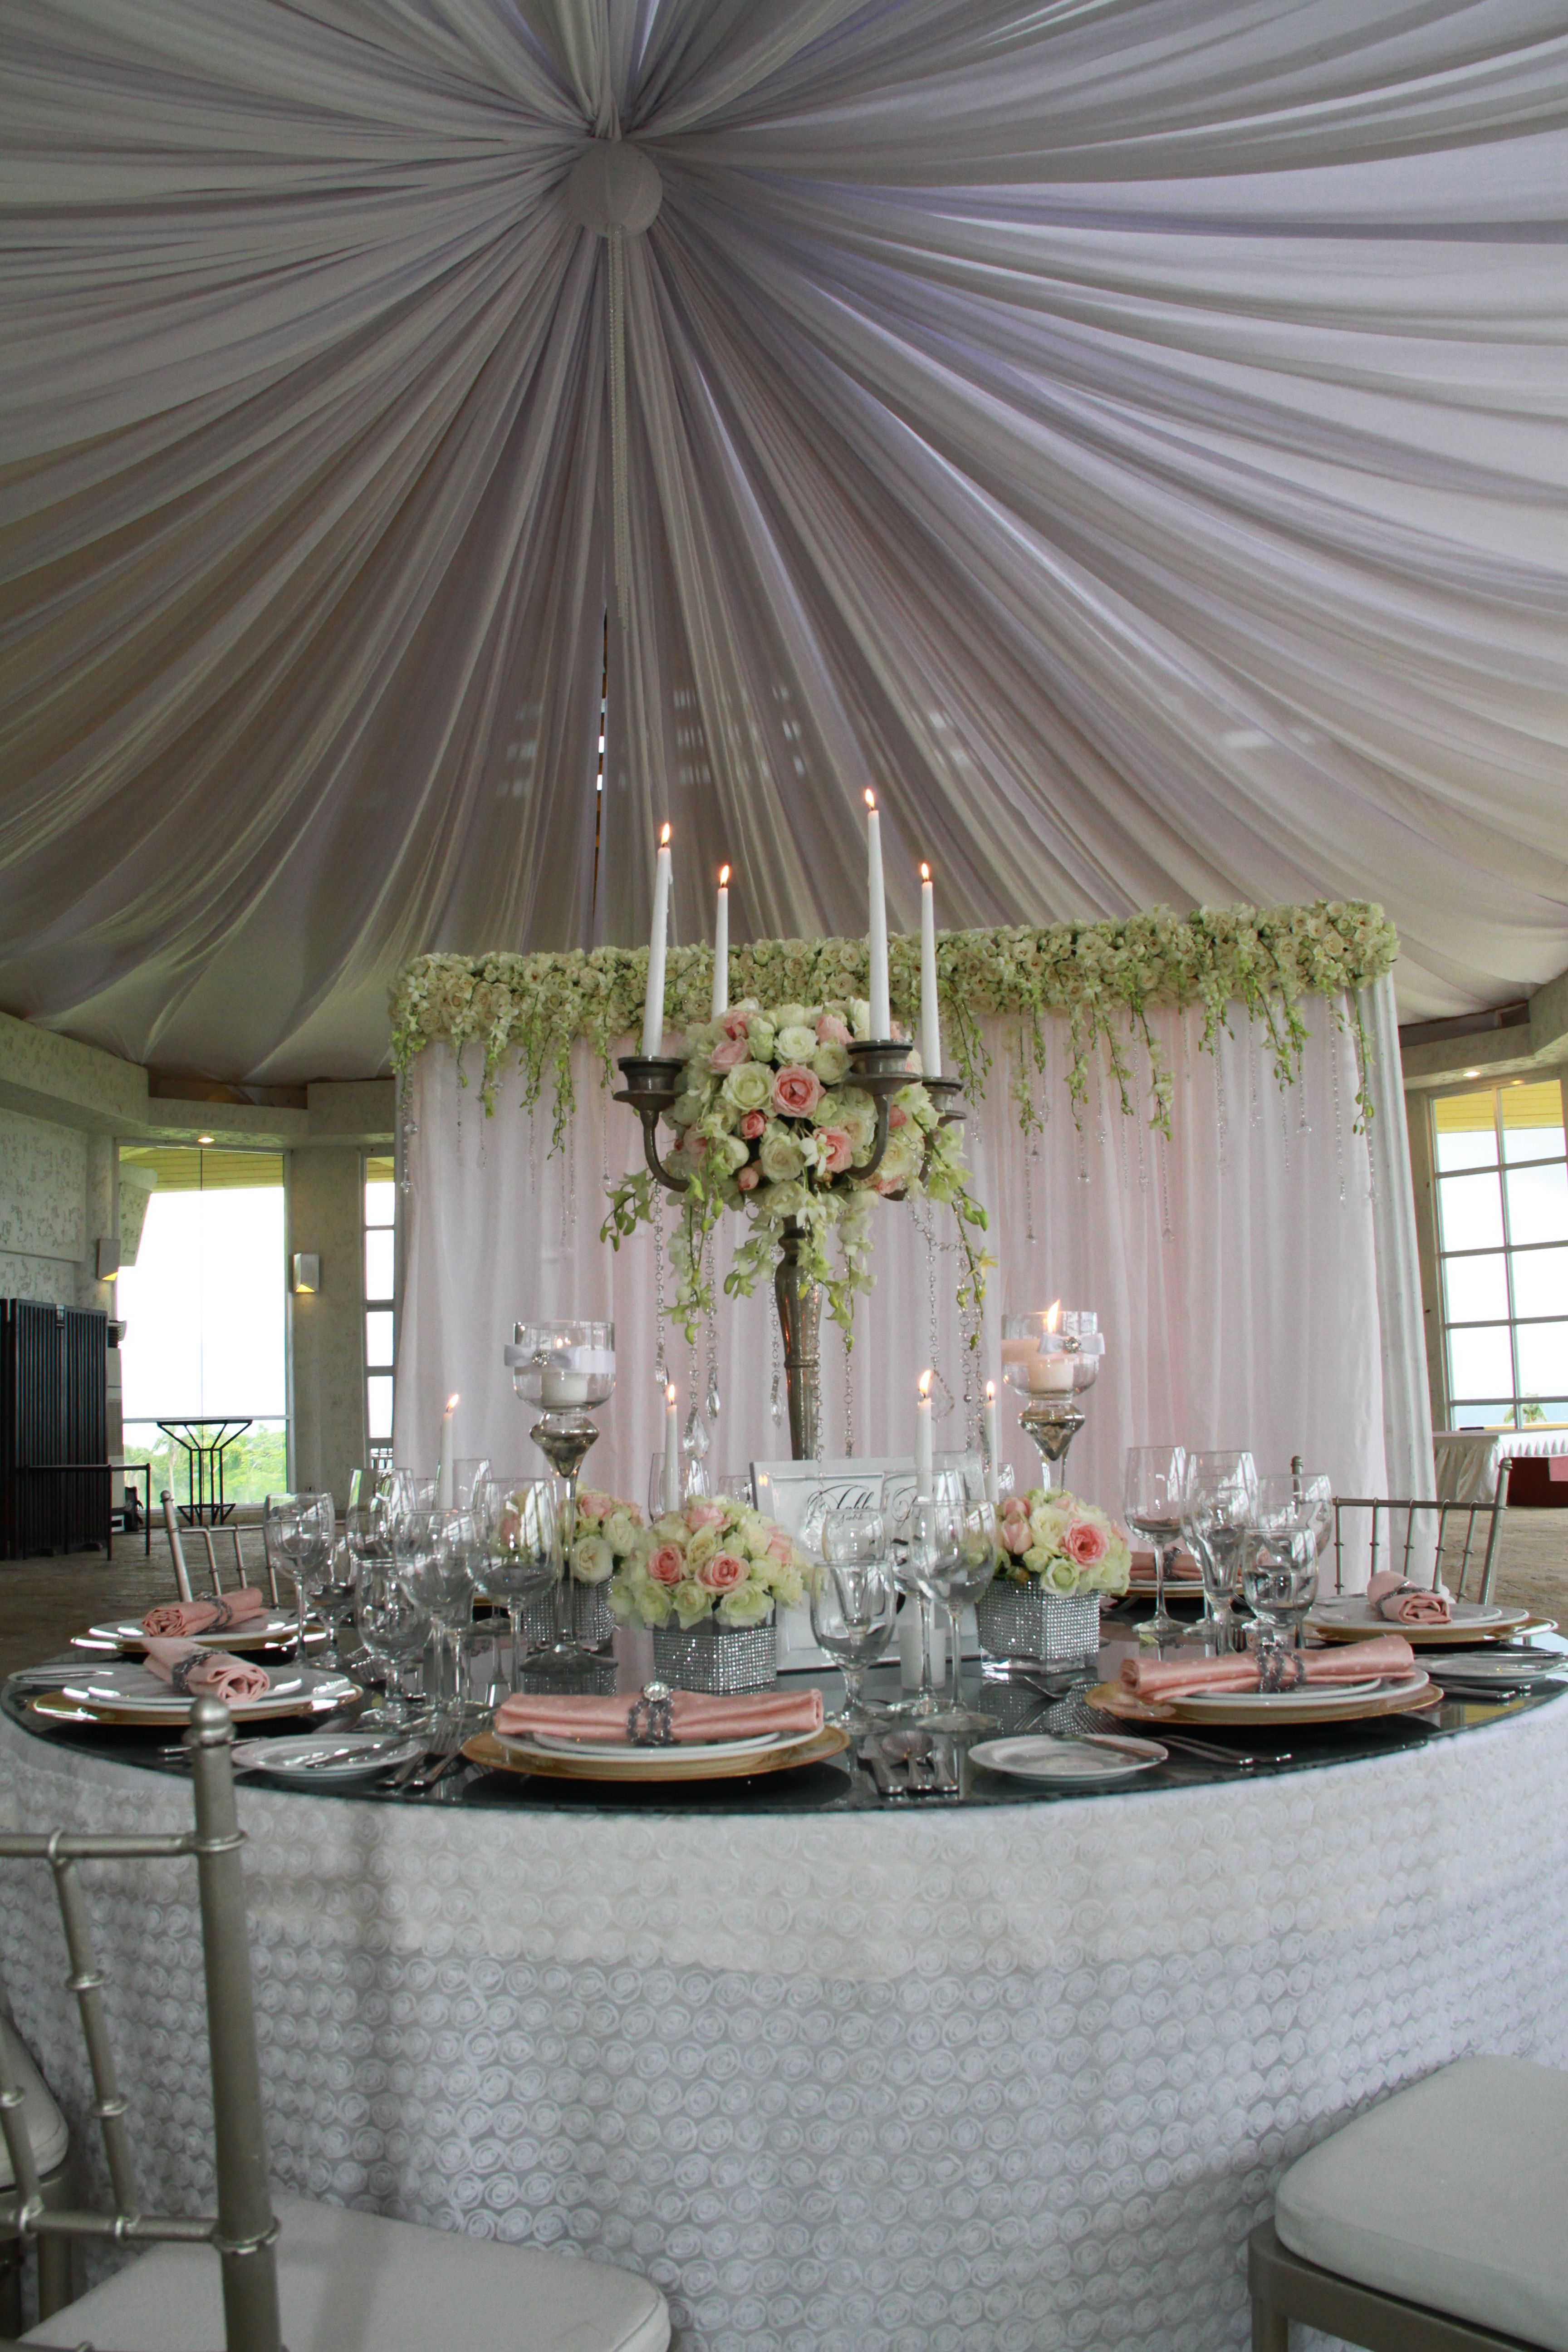 Rosette layered table fabric opulent weddings at tagaytay for Tagaytay wedding venue